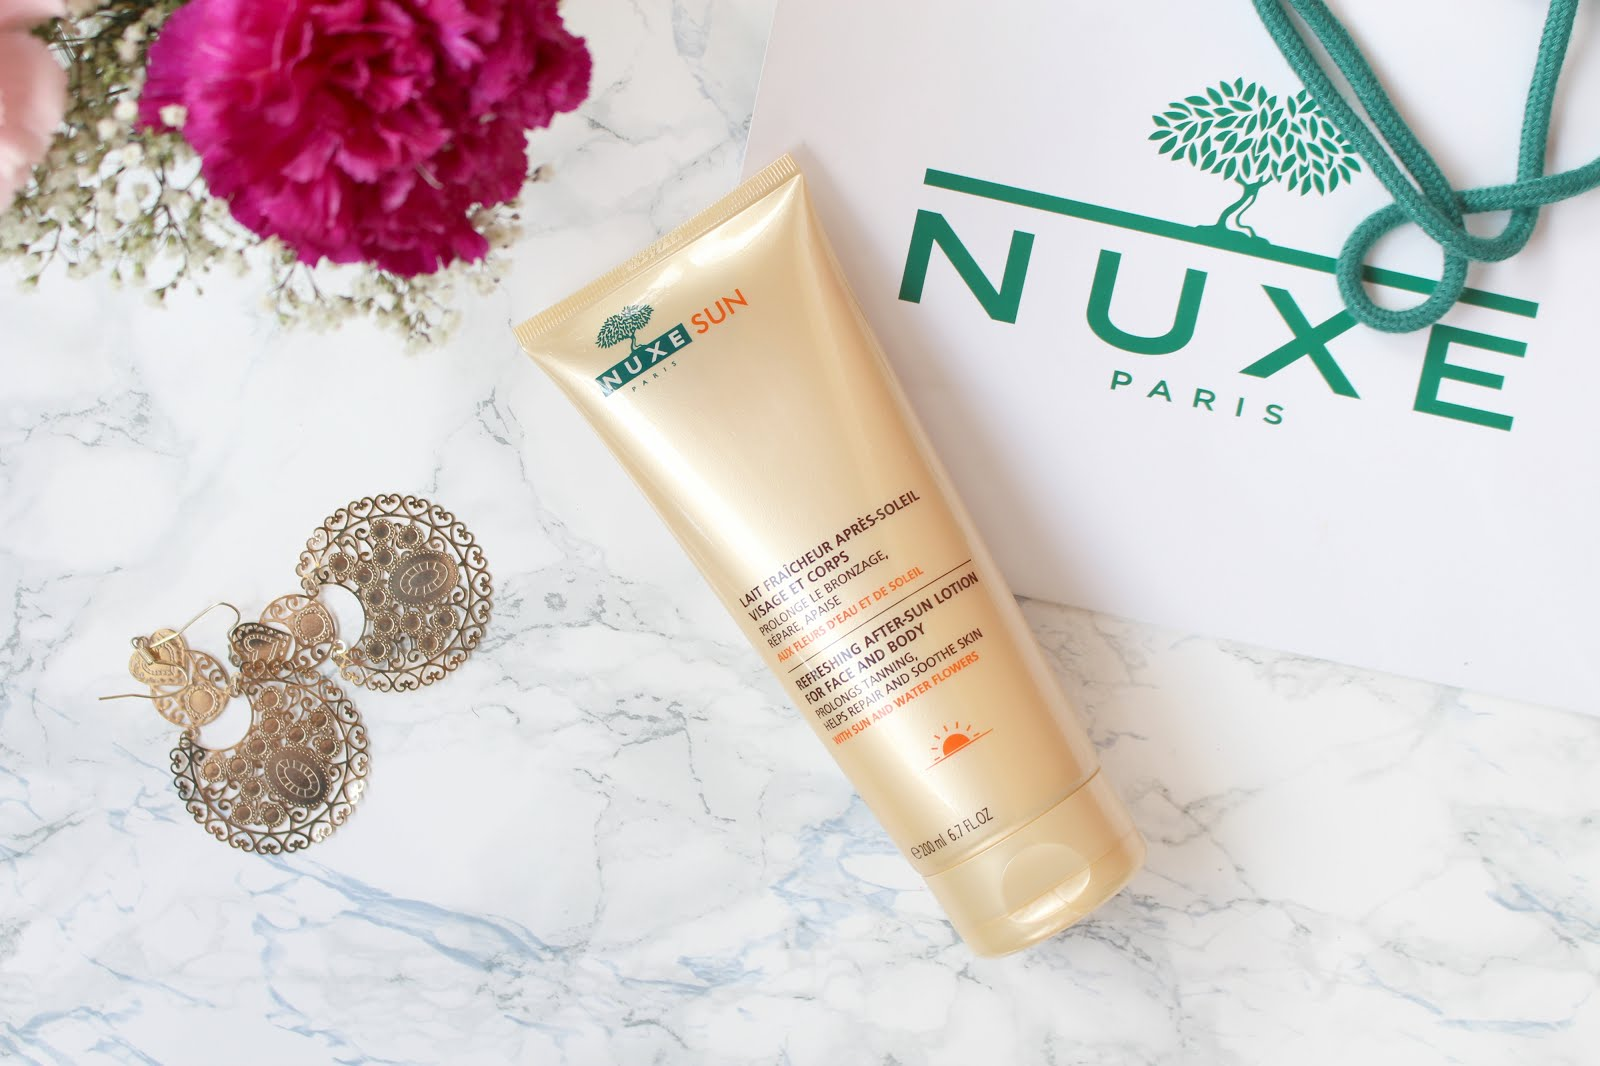 nuxe after sun lotion, nuxe after sun body lotion, nuxe body lotion